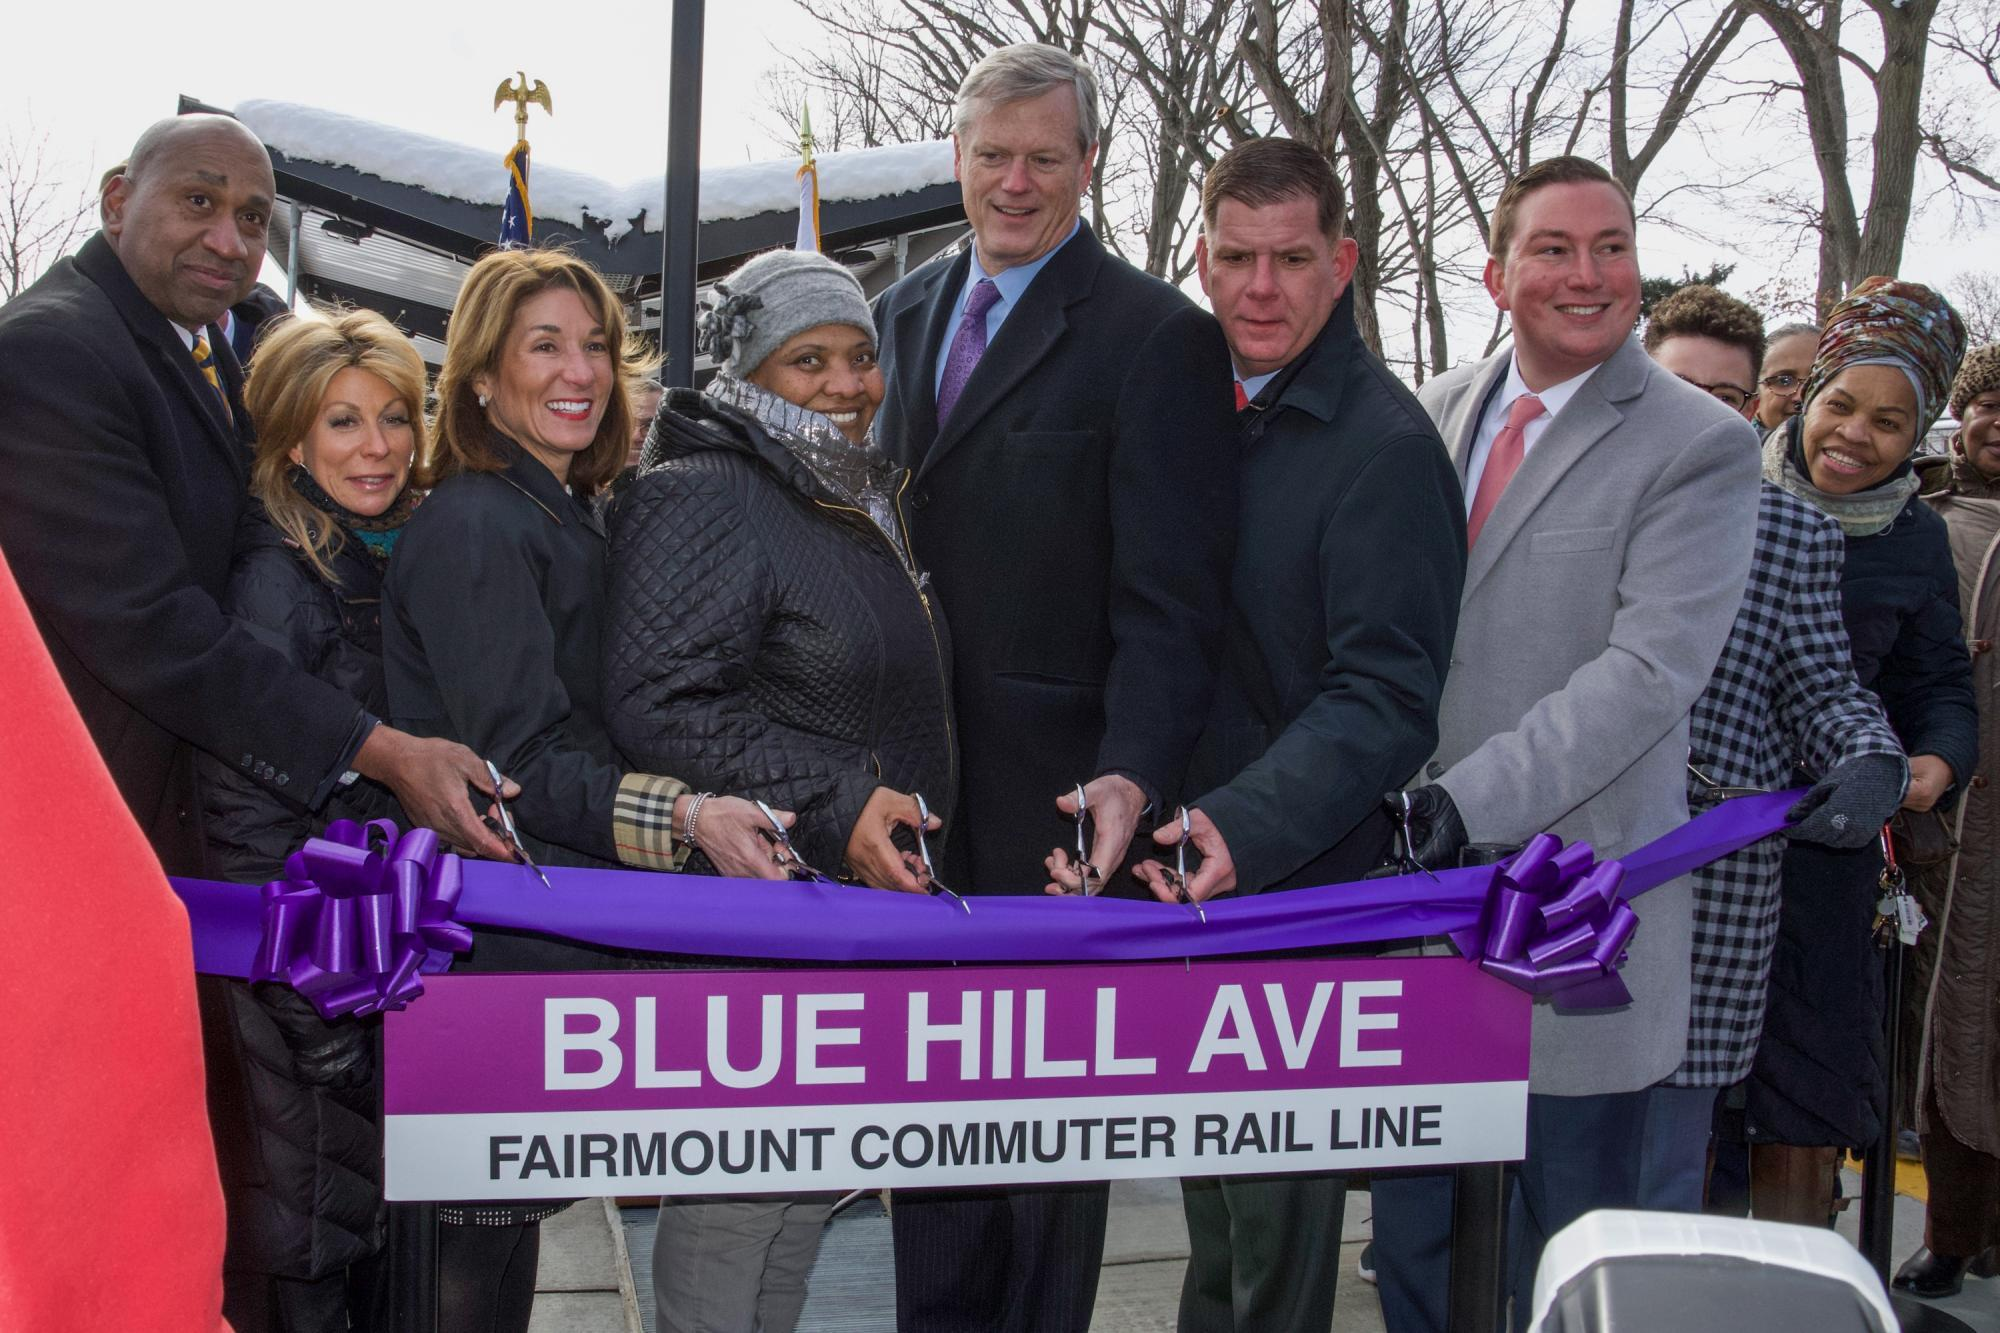 A group of elected officials and community members cut a purple ribbon to celebrate the opening of the Blue Hill Ave station.